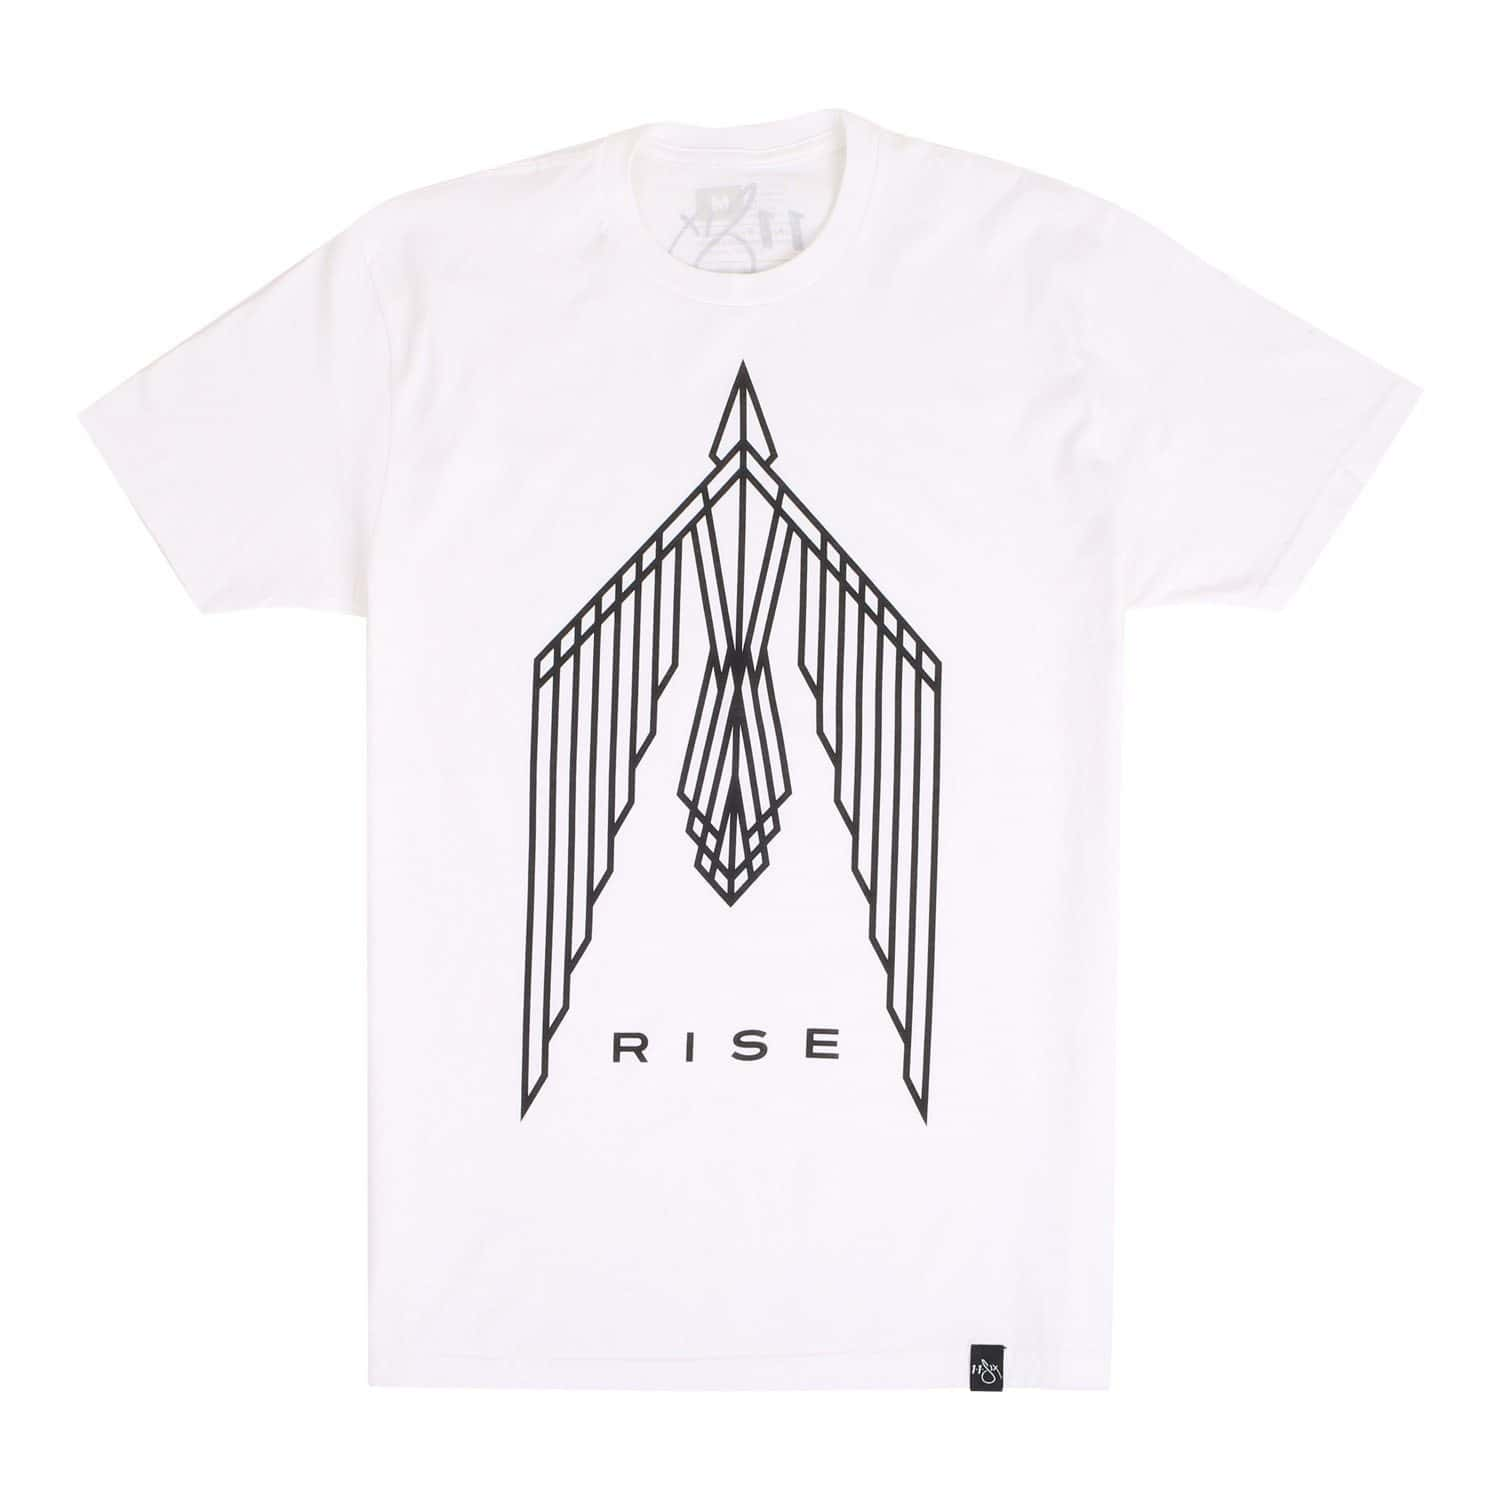 Trip Lee 'Rise Bird' T-Shirt